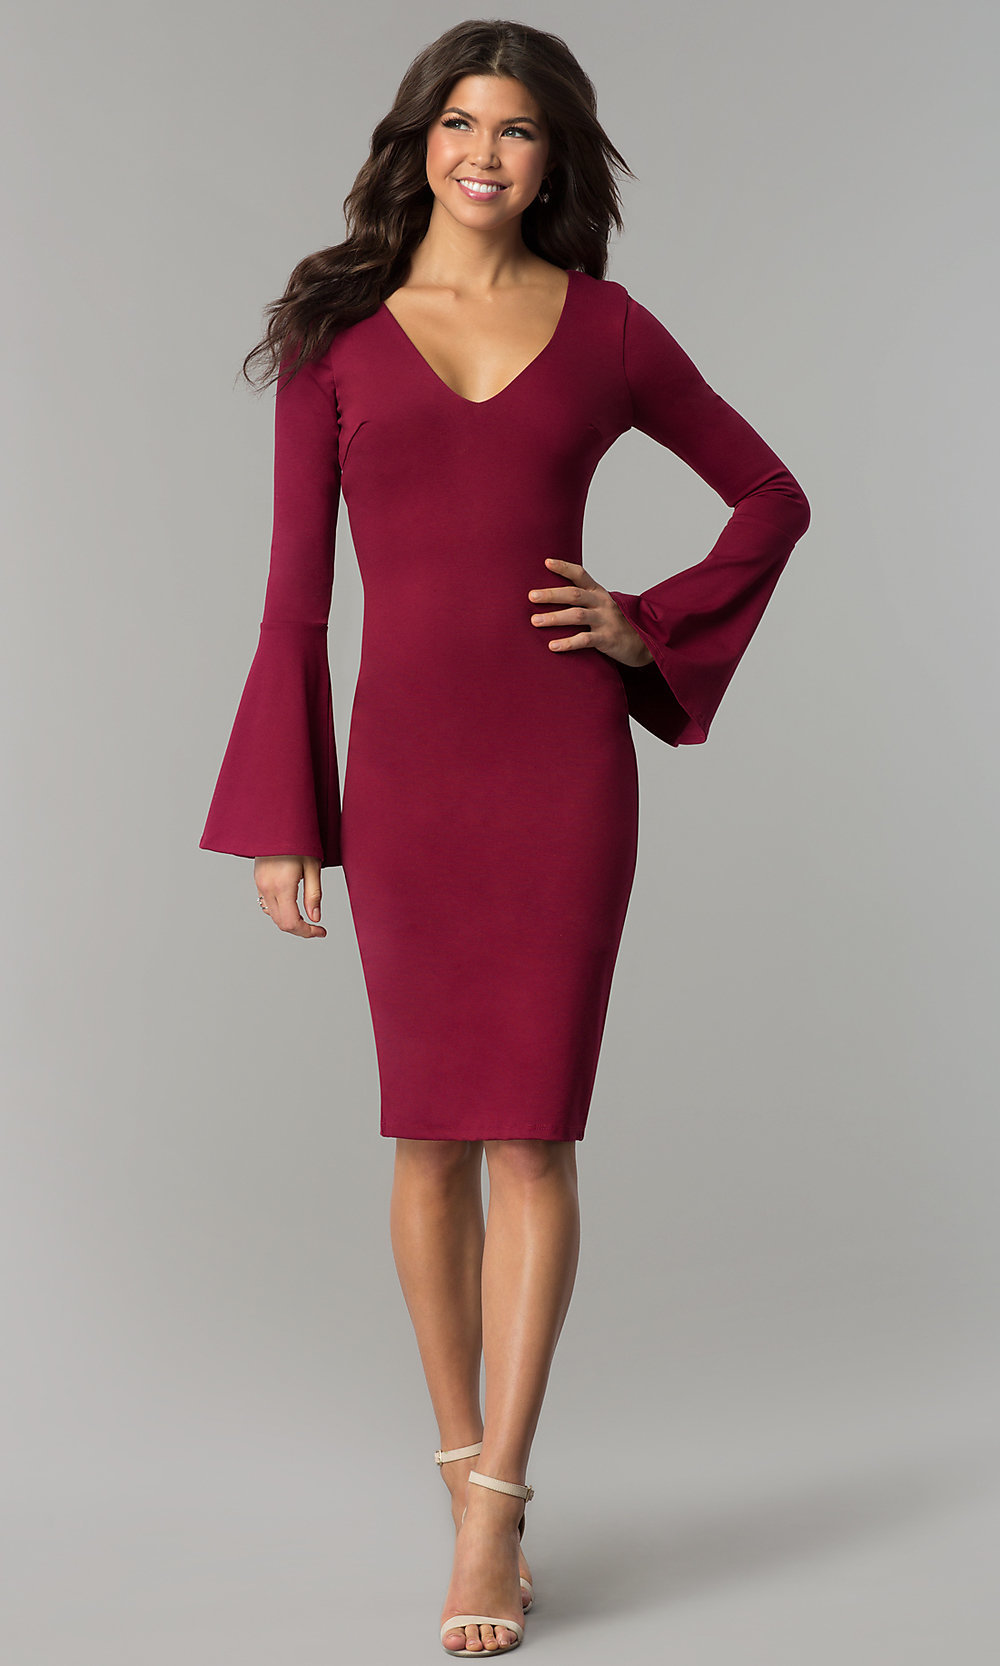 fd7e84dbb4029 Bell Sleeve Knee-Length Holiday Party Dress